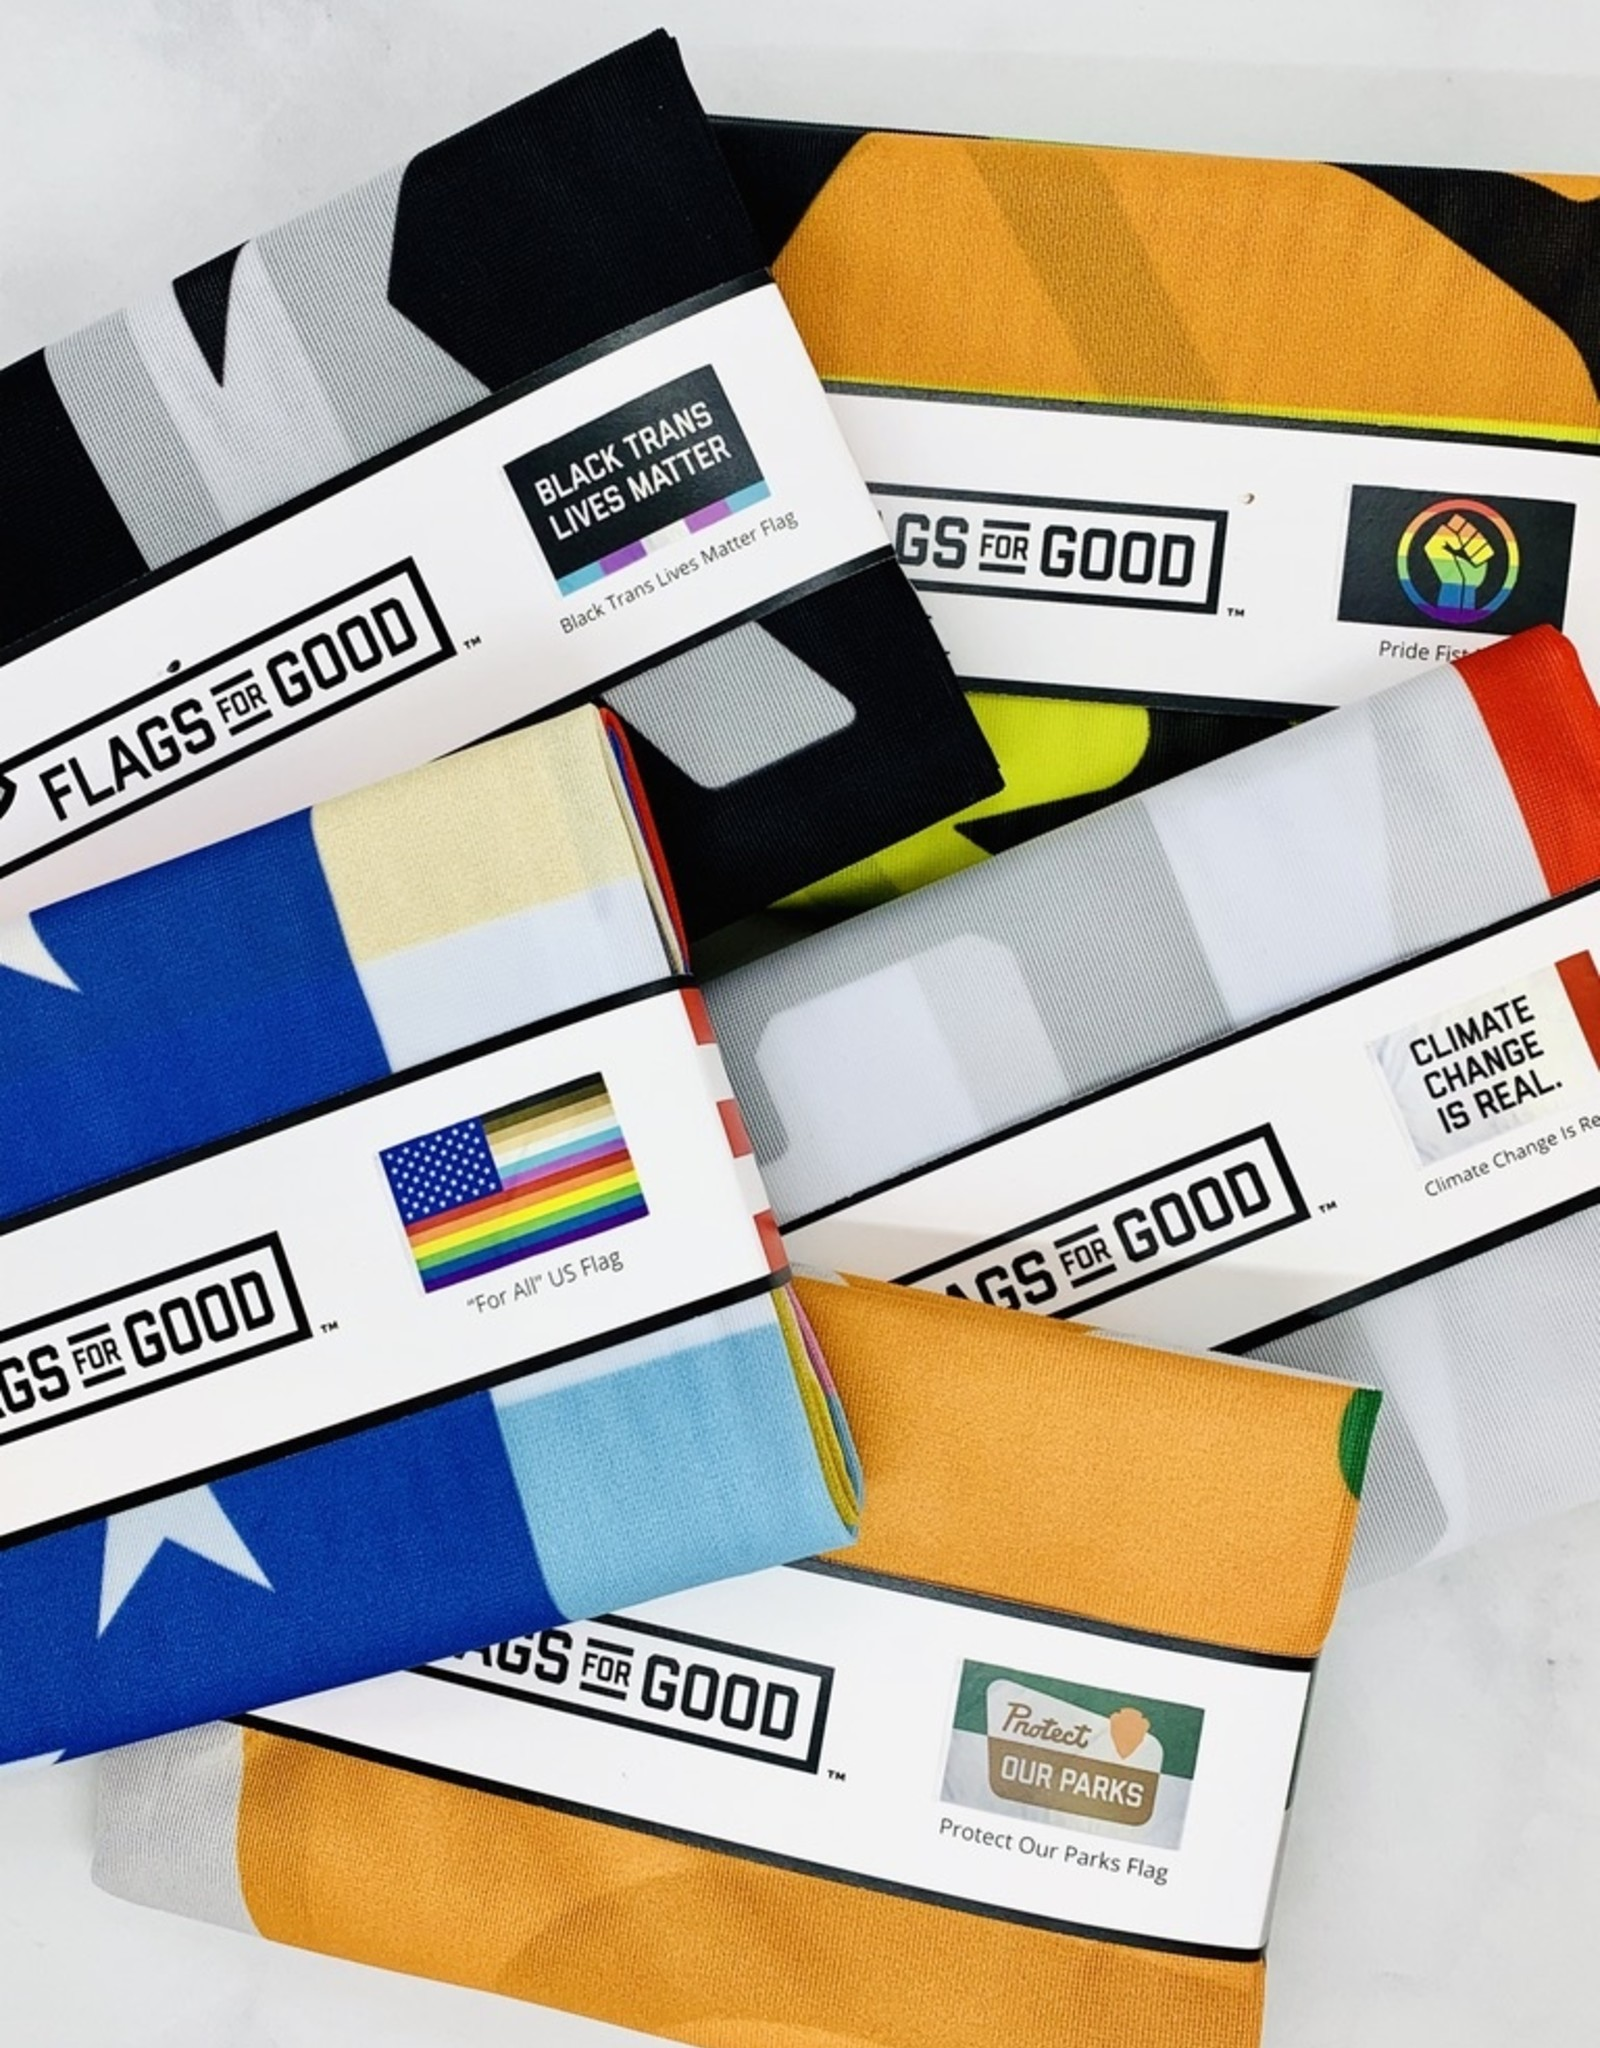 Flags for Good Flags for Good Activism: